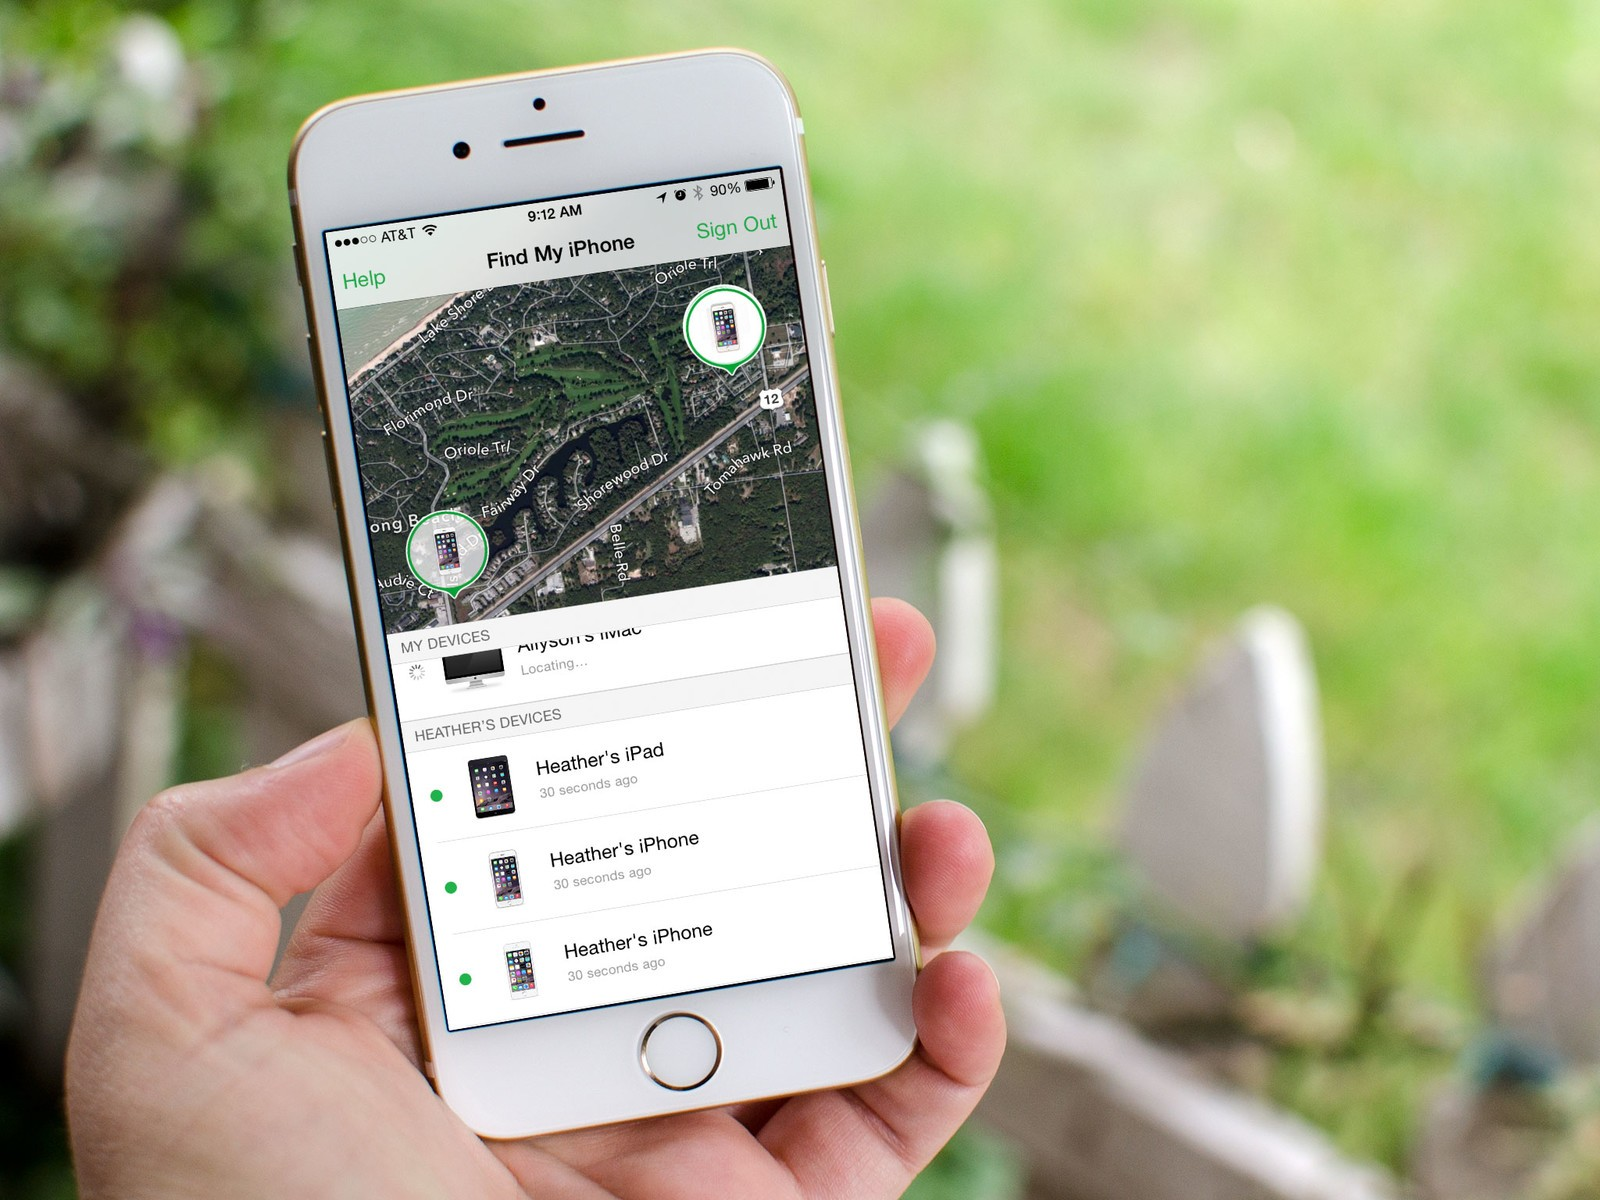 How to use Family Sharing with Find My iPhone